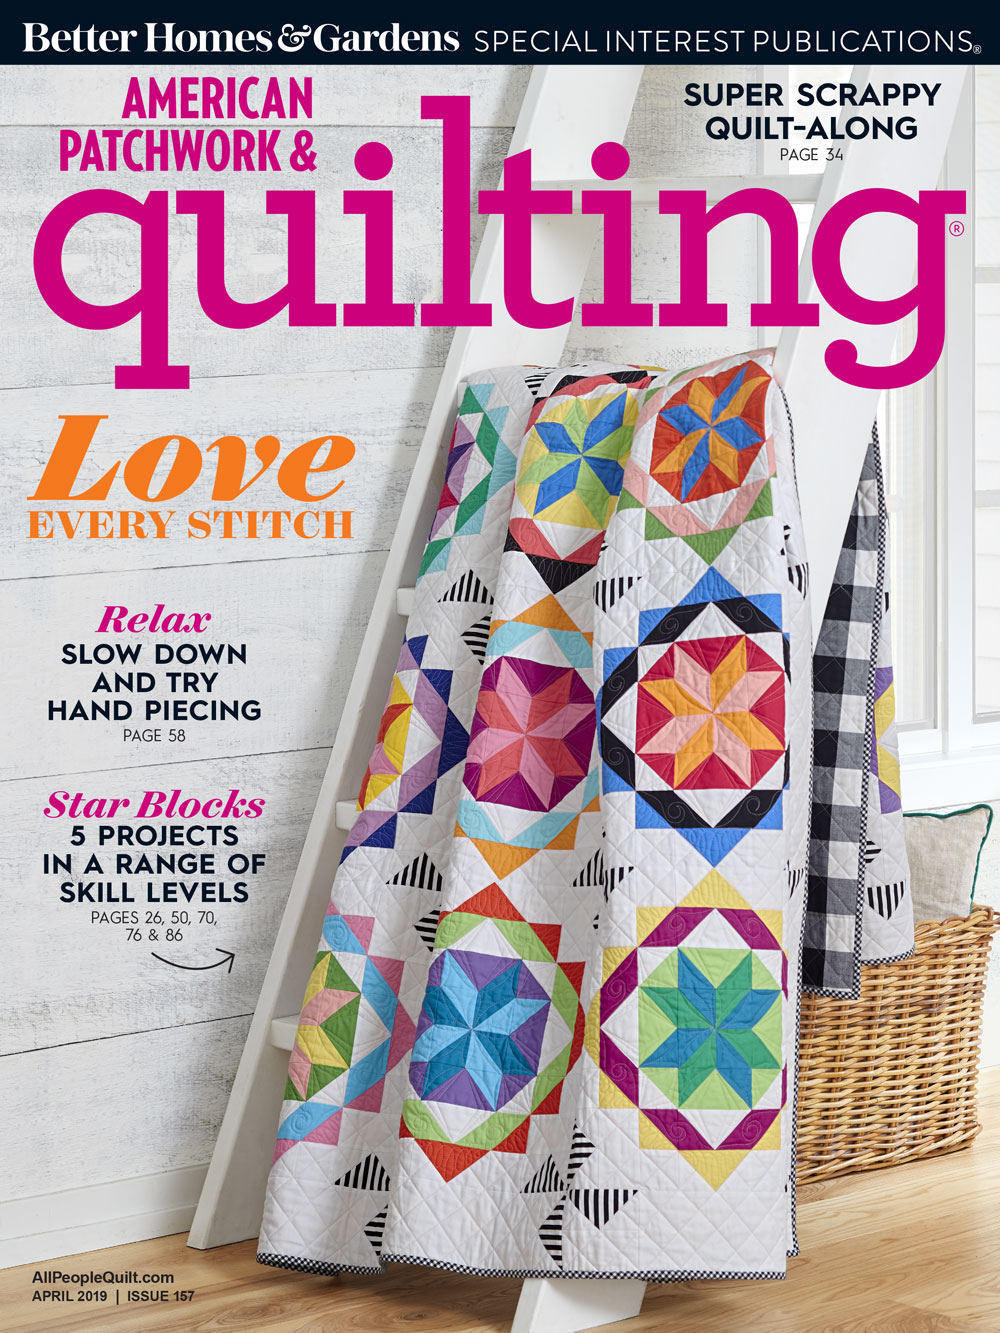 American Patchwork & Quilting April 2019